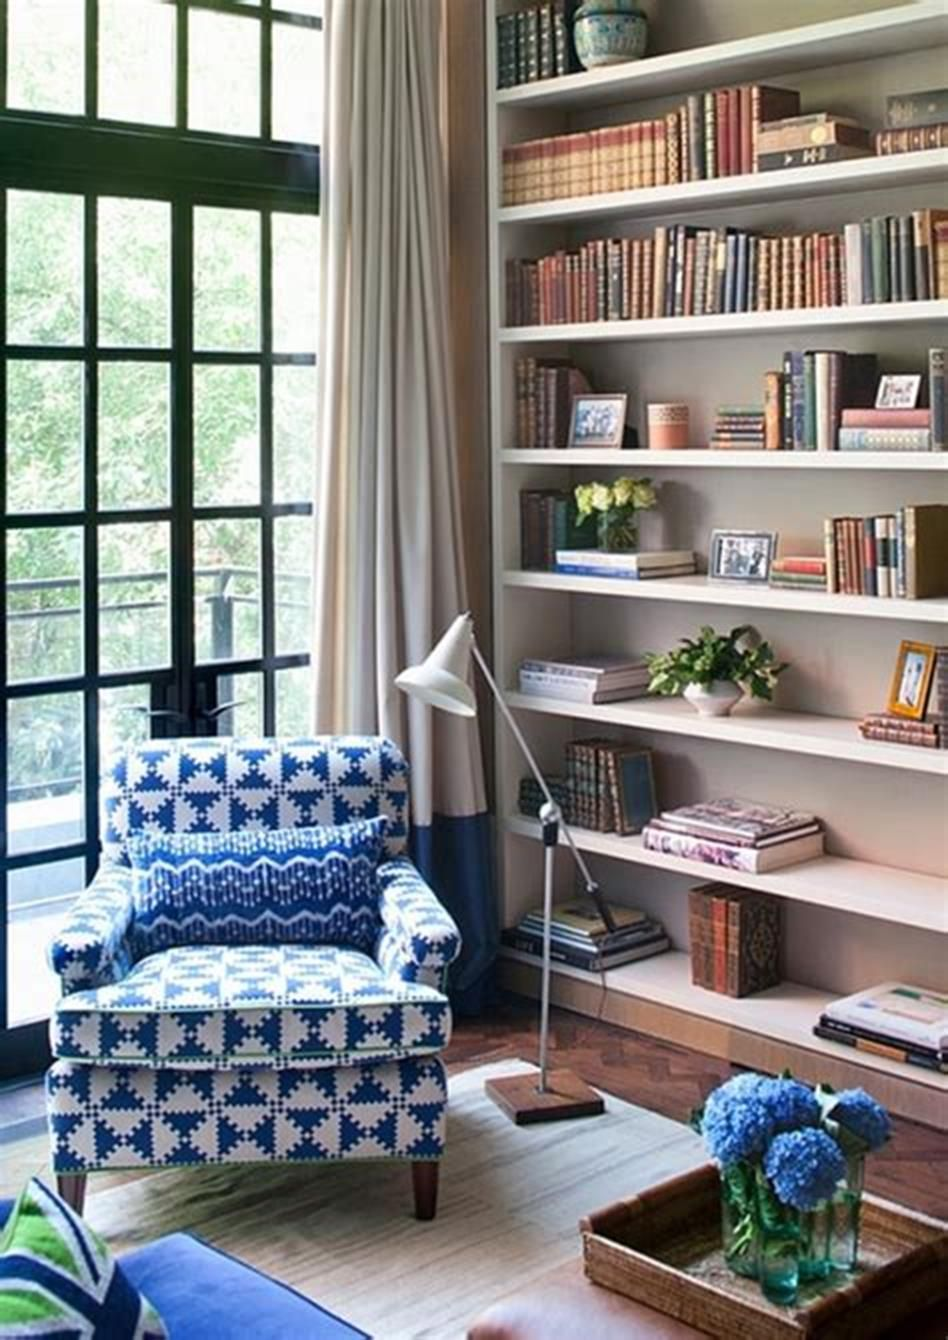 Living Room Library Design Ideas: 50 Comfortable Living Room Decorating And Design Ideas For